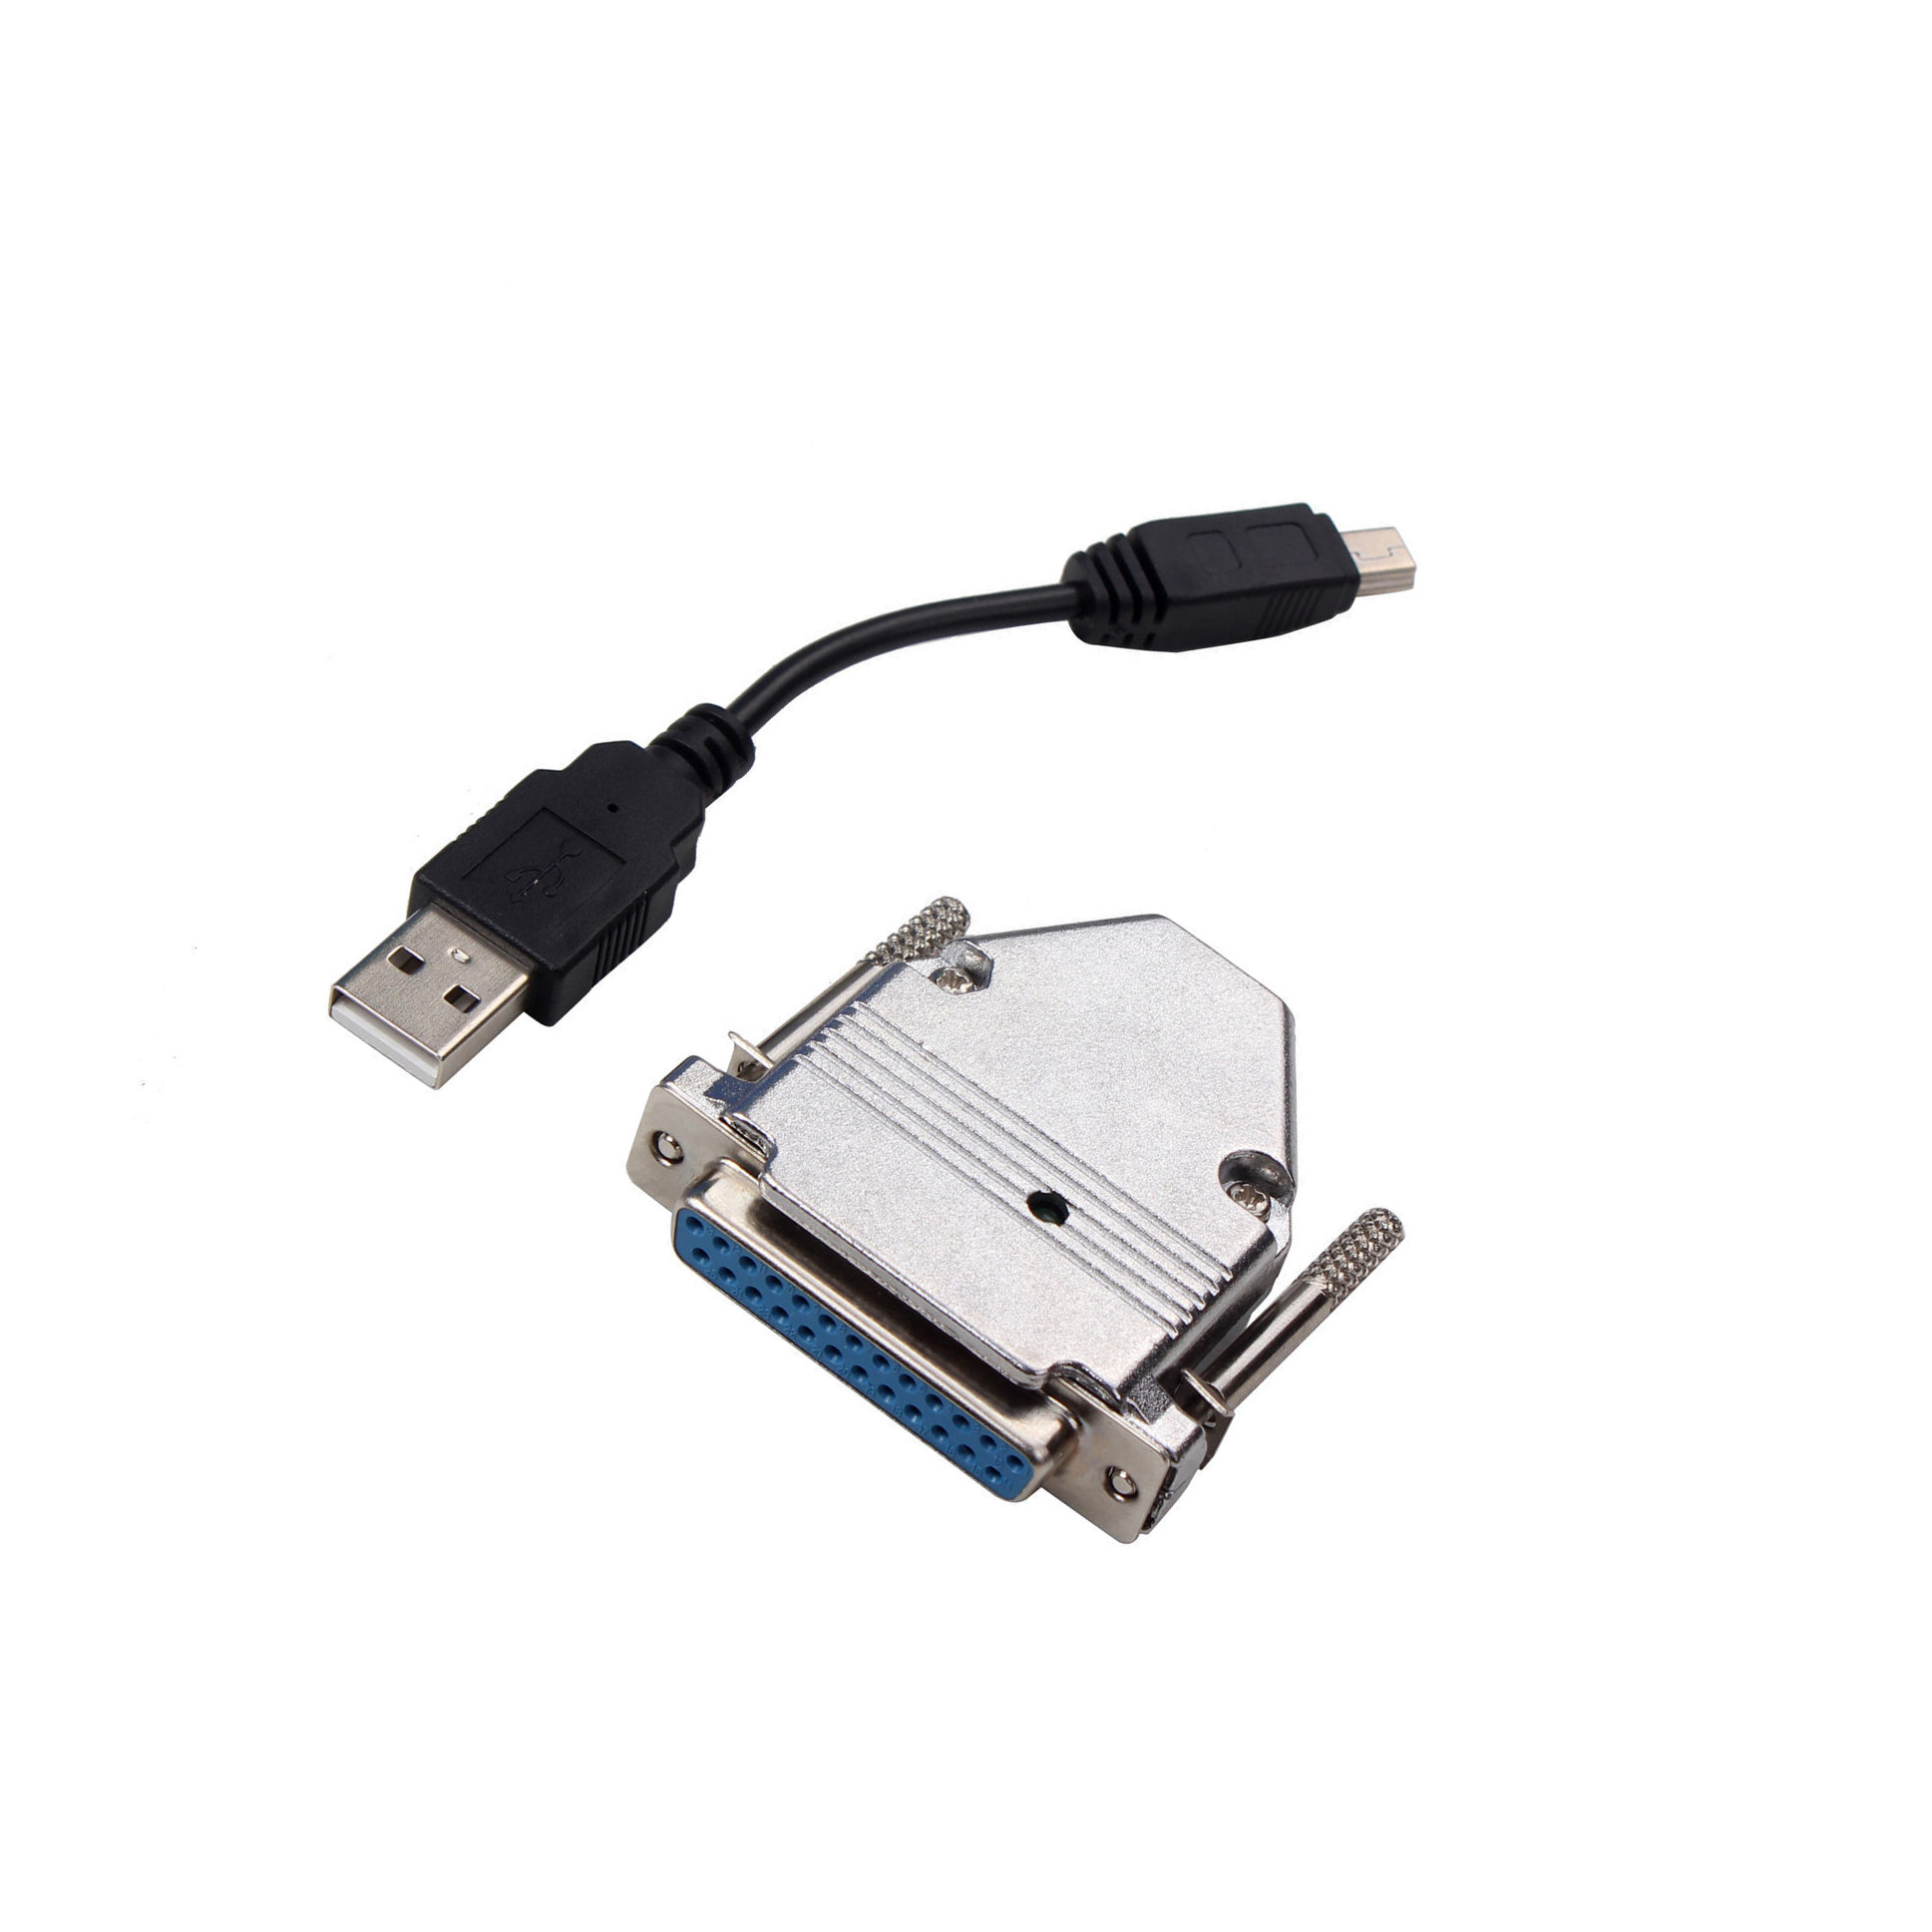 New Usb To Parallel Adapter Cnc Controller For Mach3 Uc100 Ebay Wiring Diagram